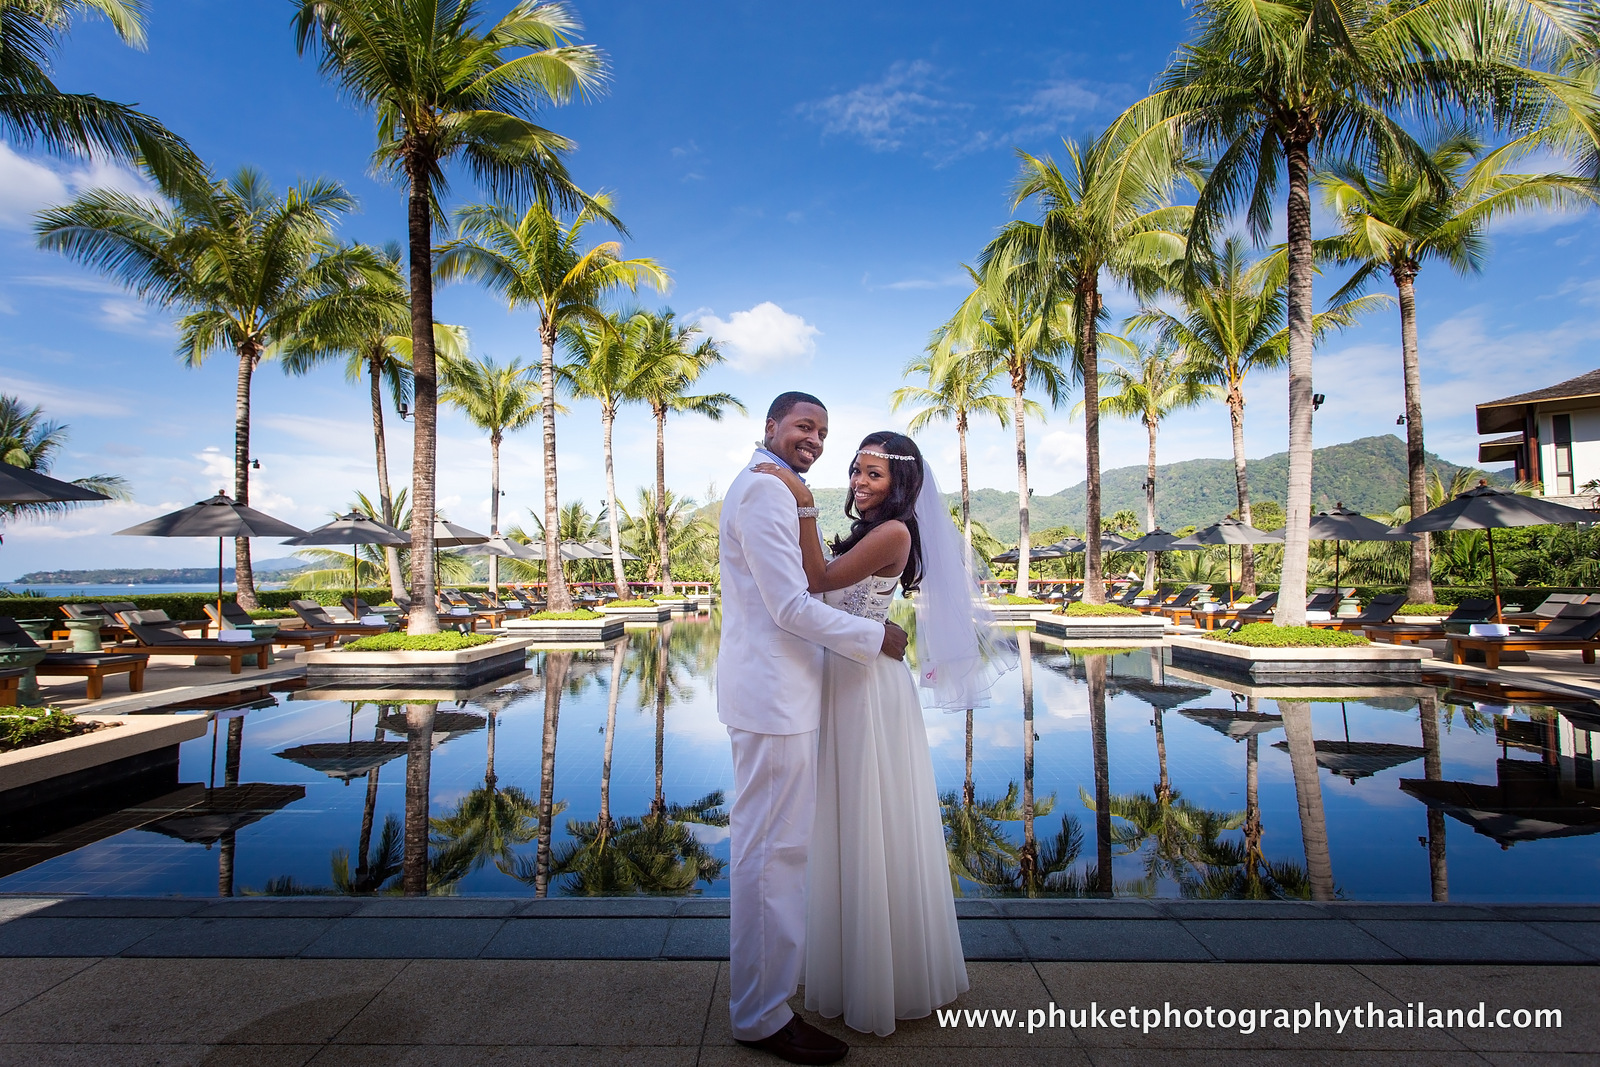 wedding photo session at phuket thailand